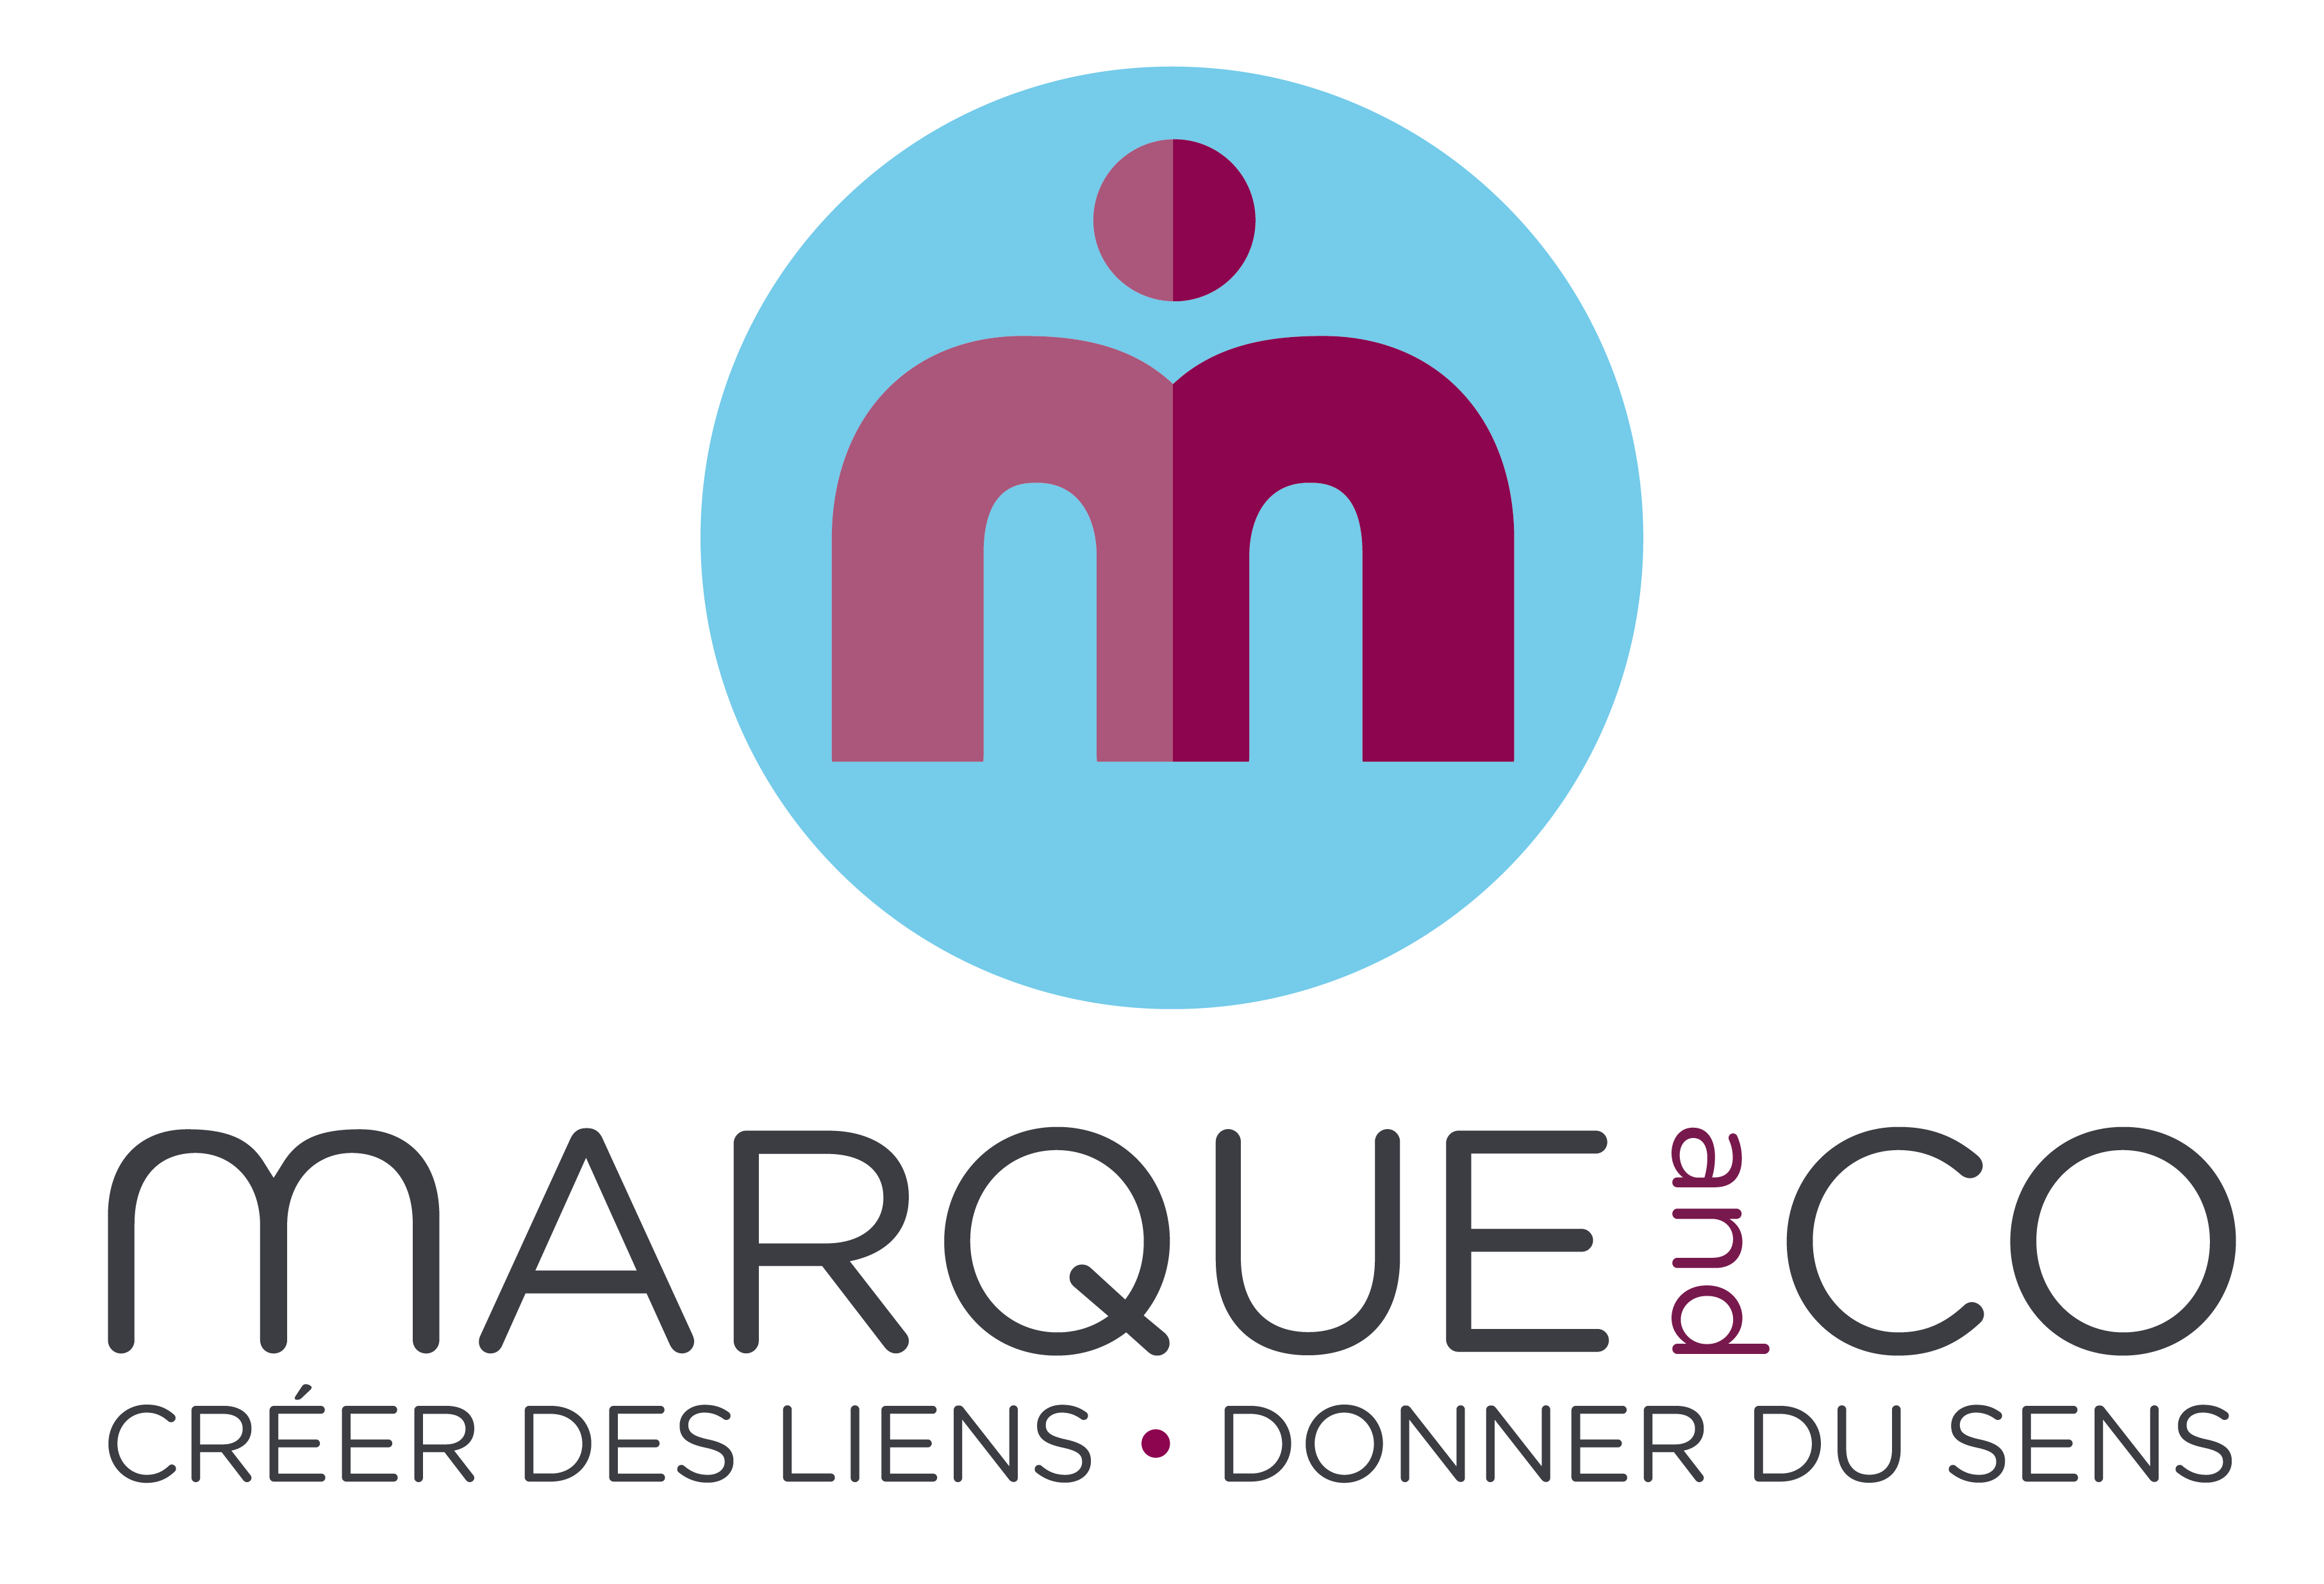 Marque and Co